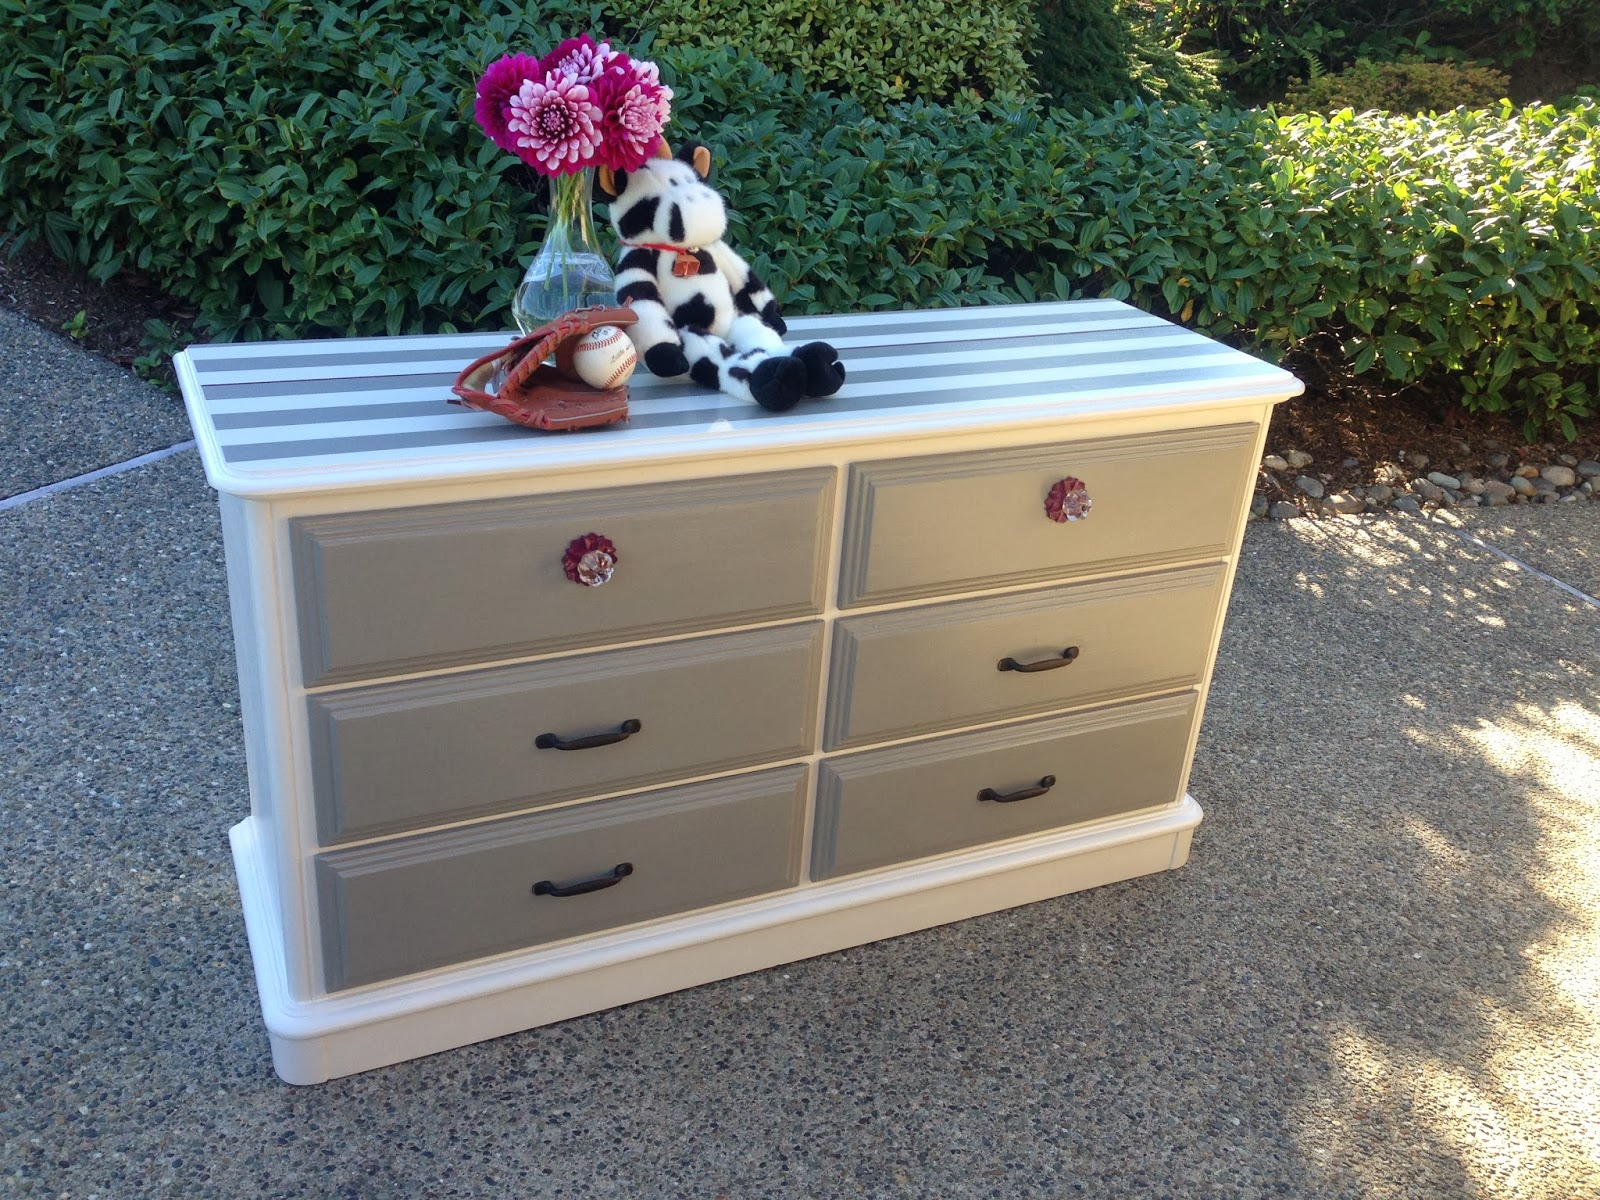 #336798  Junk Pile: Off White And Gray Striped Dresser With Purple Accents with 1600x1200 px of Brand New Off White Dresser 12001600 pic @ avoidforclosure.info